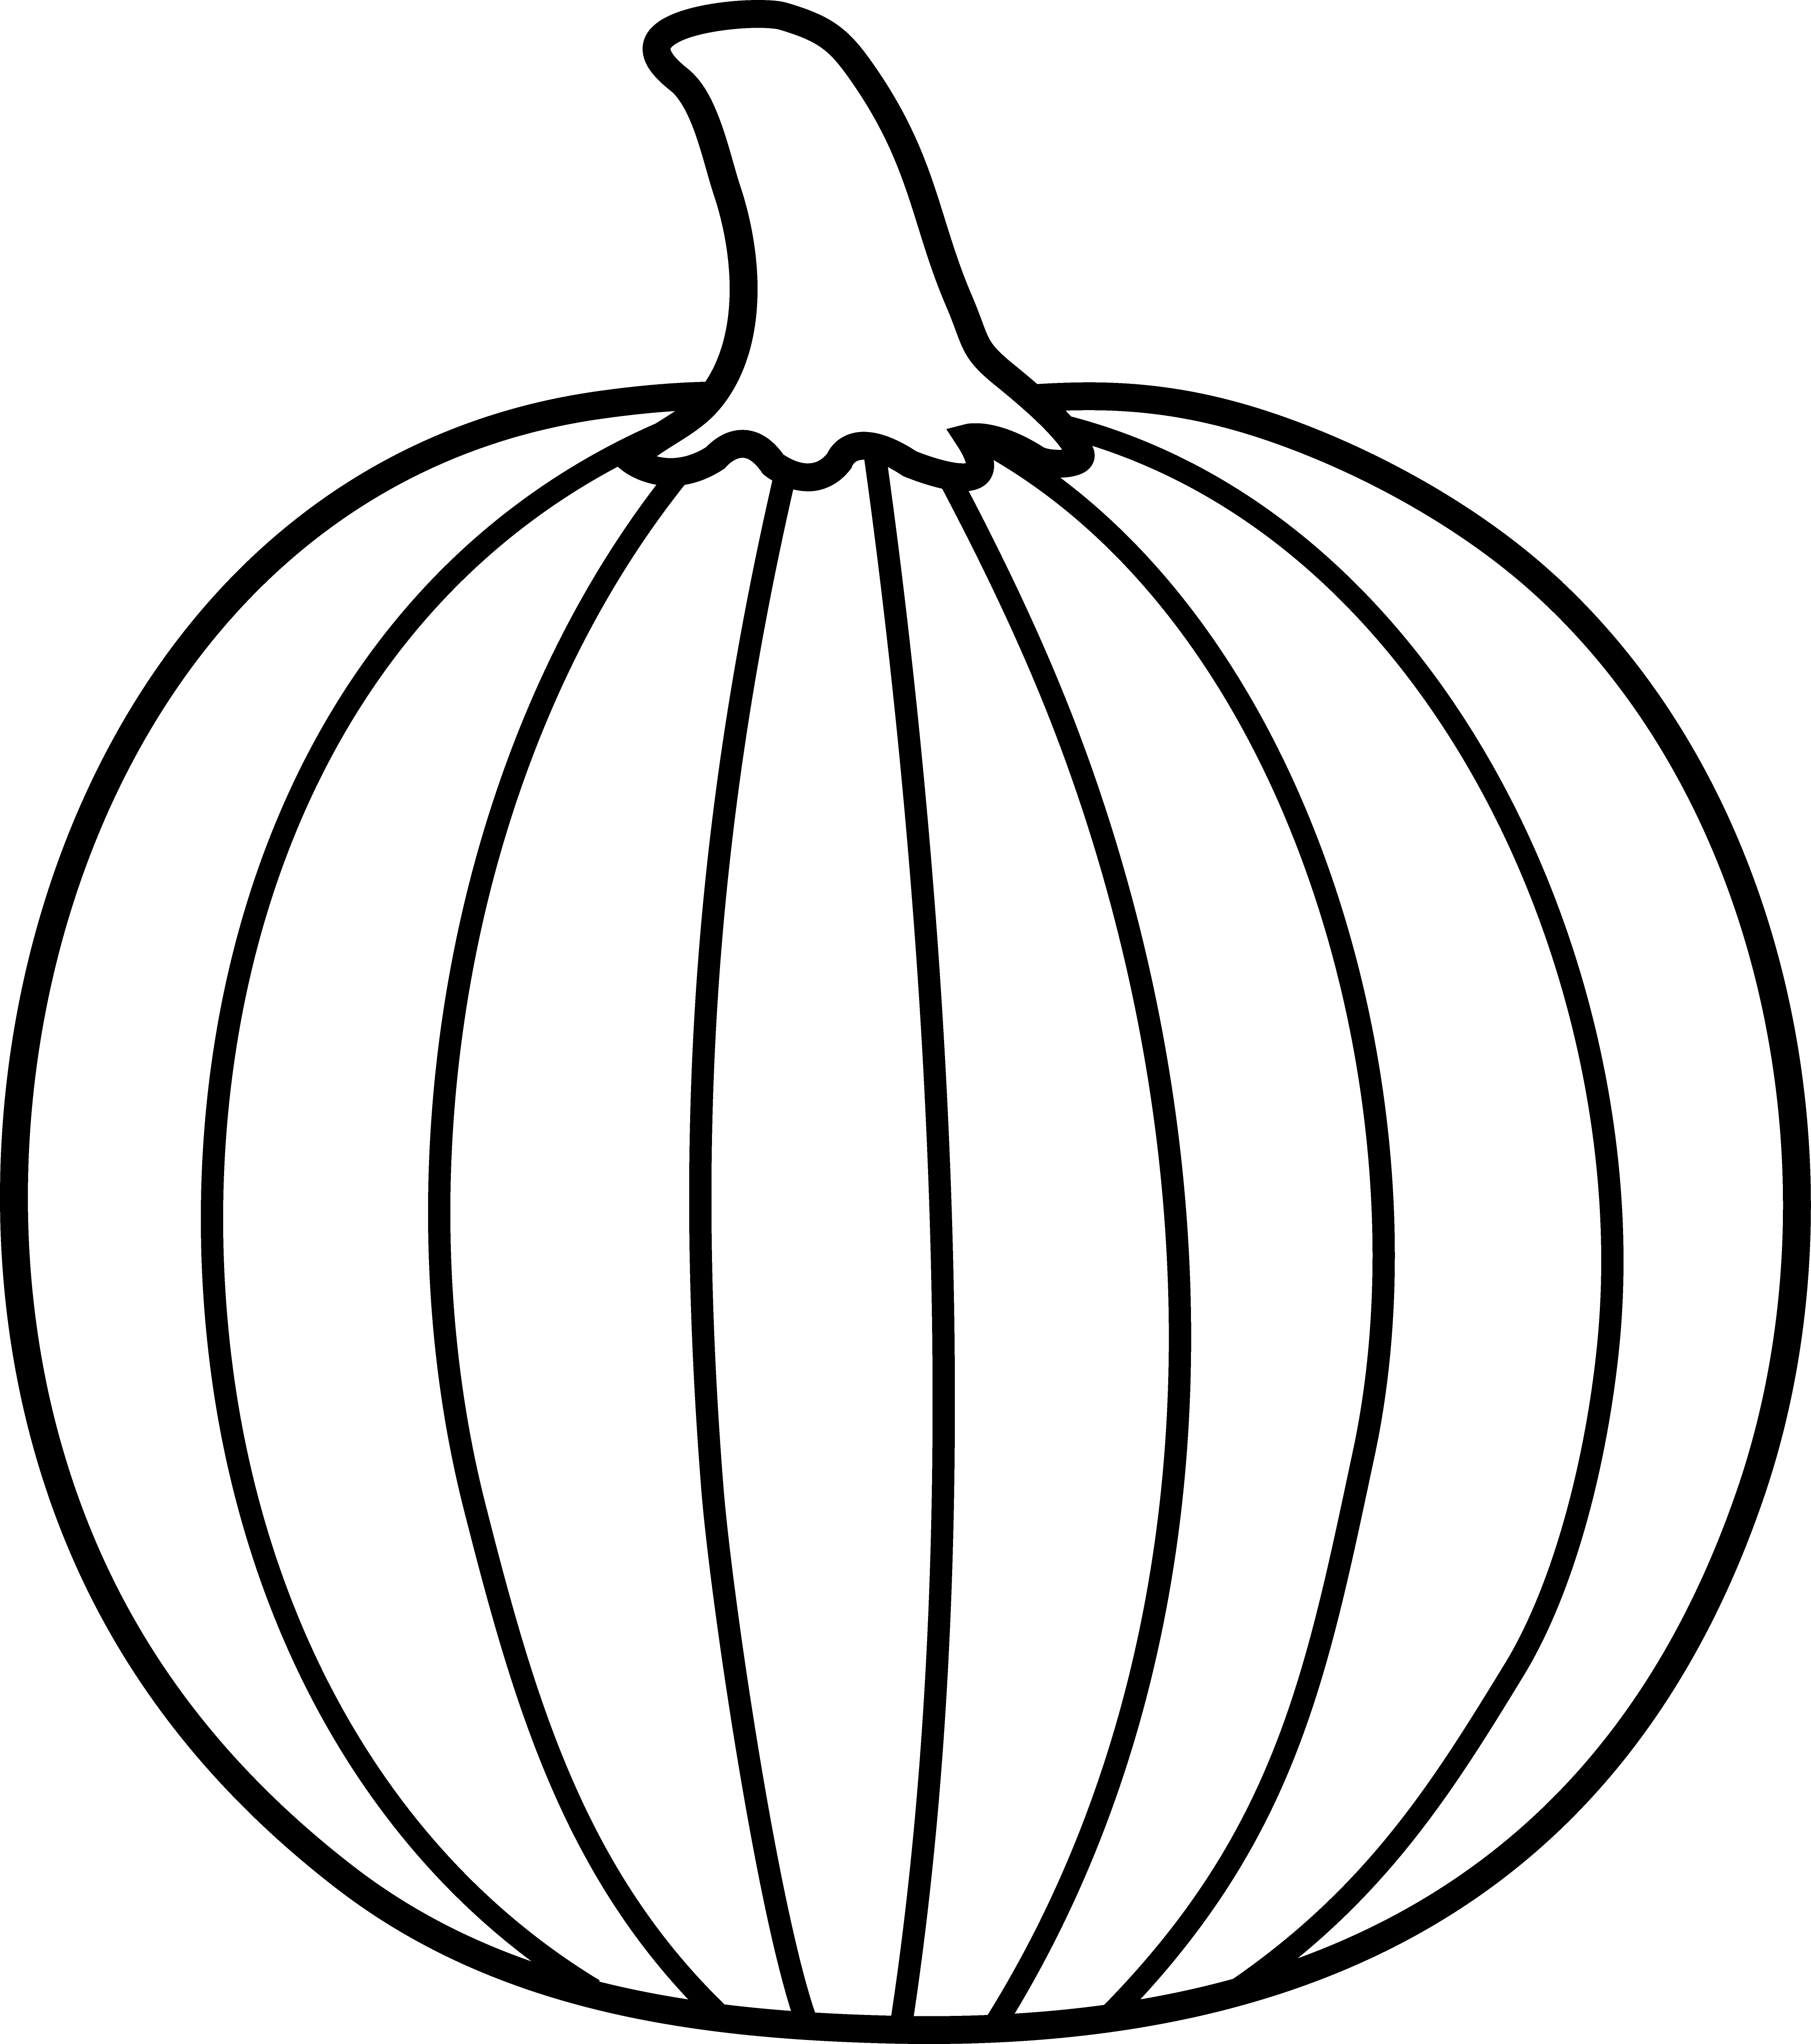 color a pumpkin simple pumpkin outline clipart panda free clipart images pumpkin a color